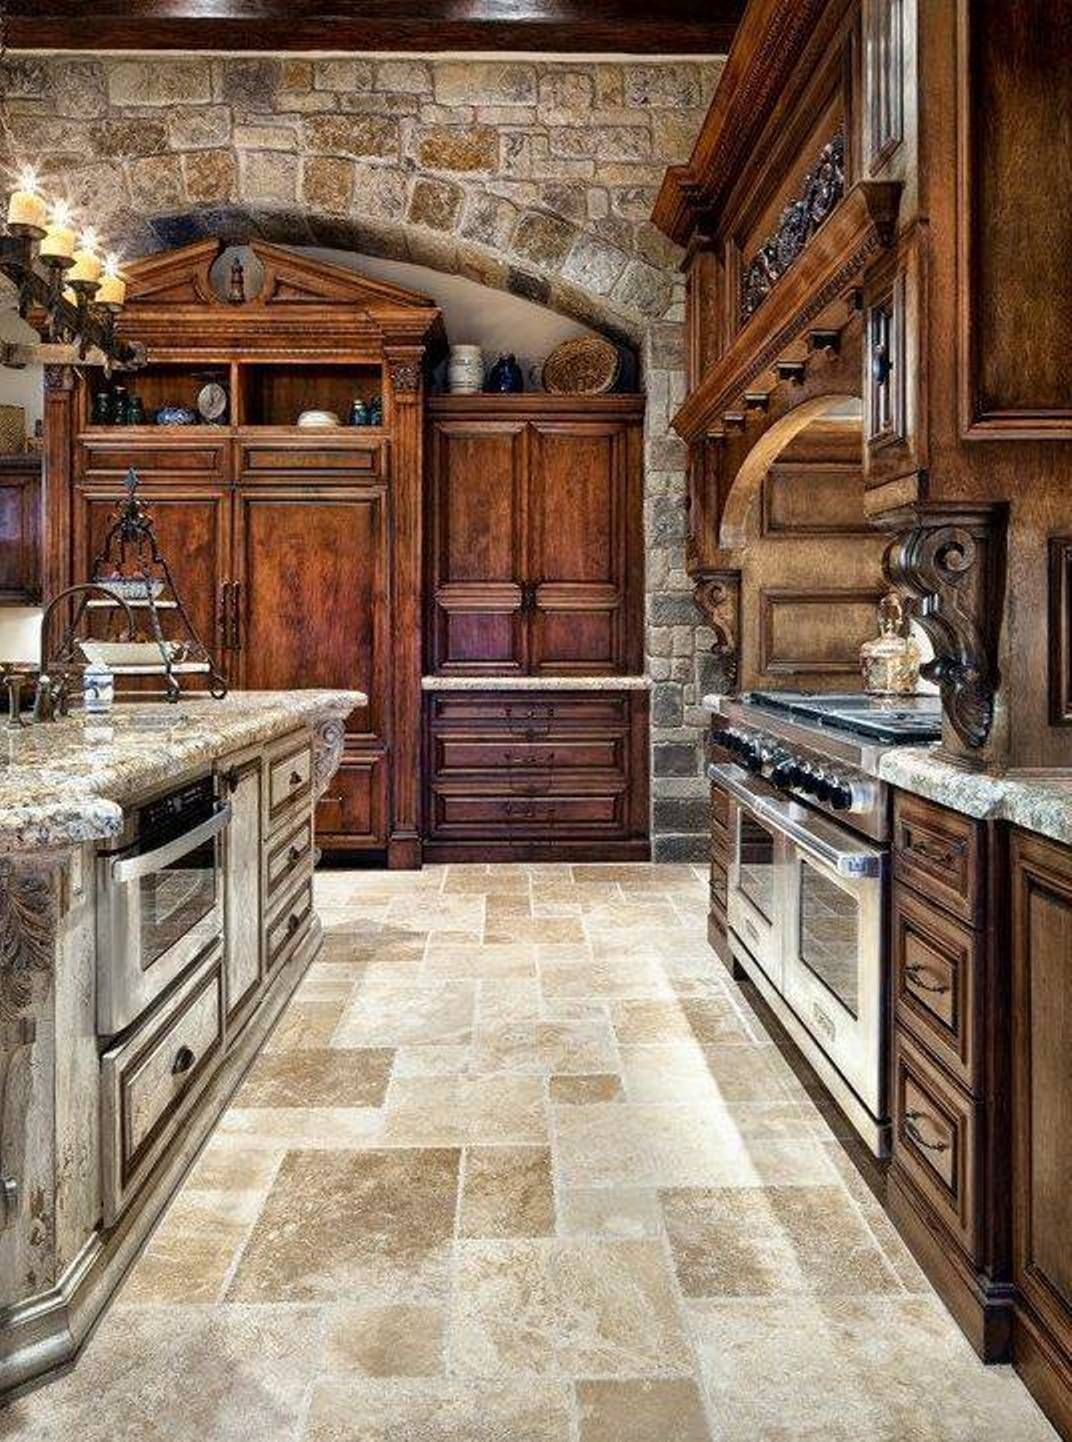 Old World Tuscan Themed Kitchen Style With Arched Brick Wall